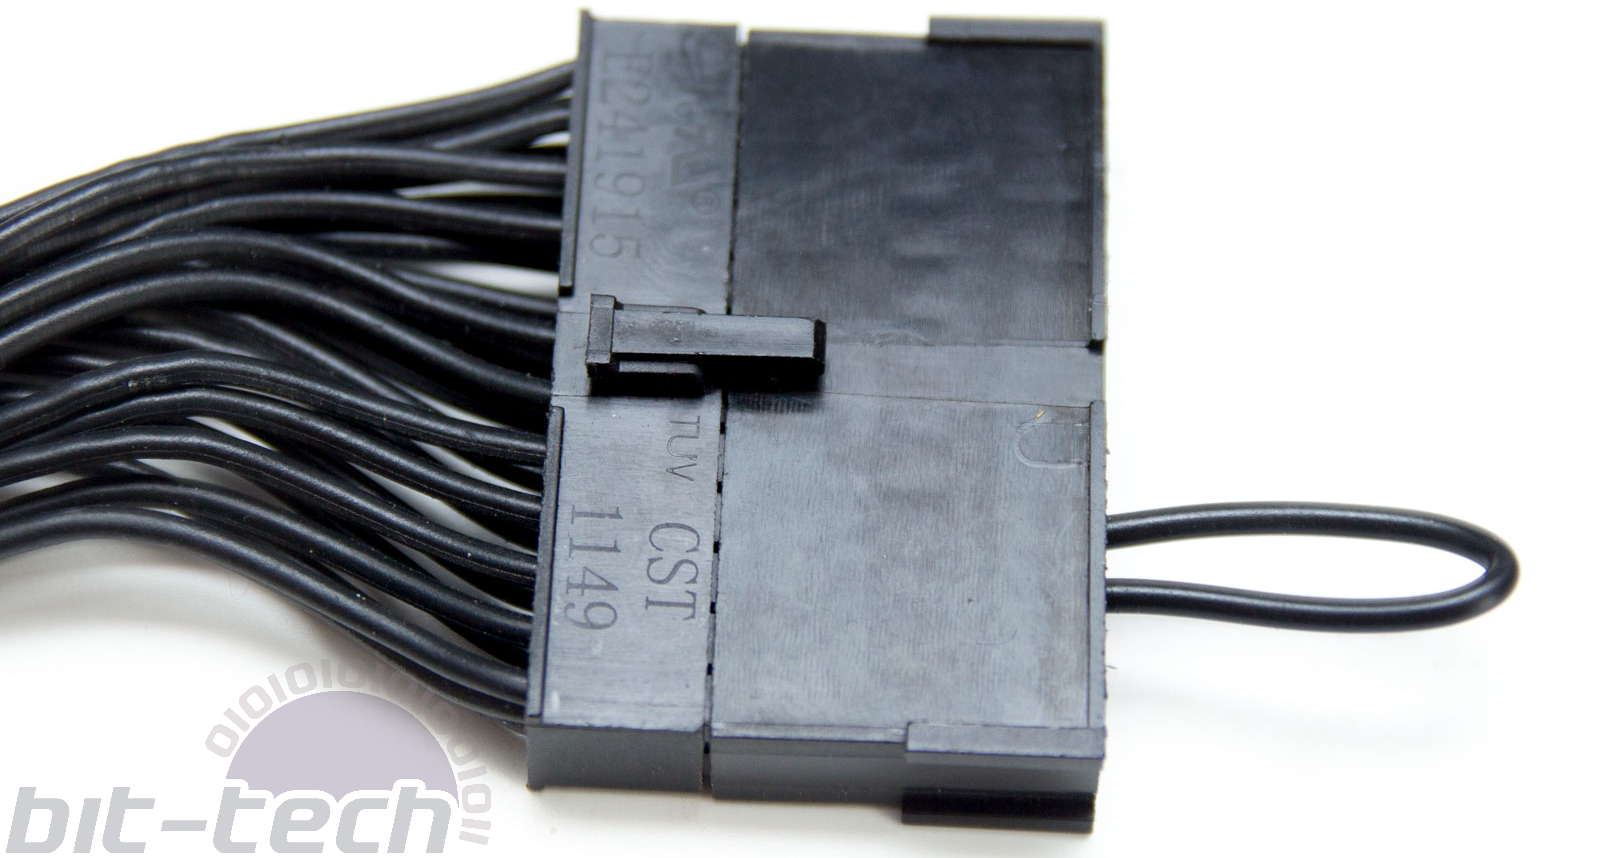 How To Jump A Psu Server Mini 24 Pin Wiring Diagram These Jumpers Can Be Bought For Just 2 Excluding Delivery So Are Only Really Cost Effective If You Have The Tools Already Or Youre About Order